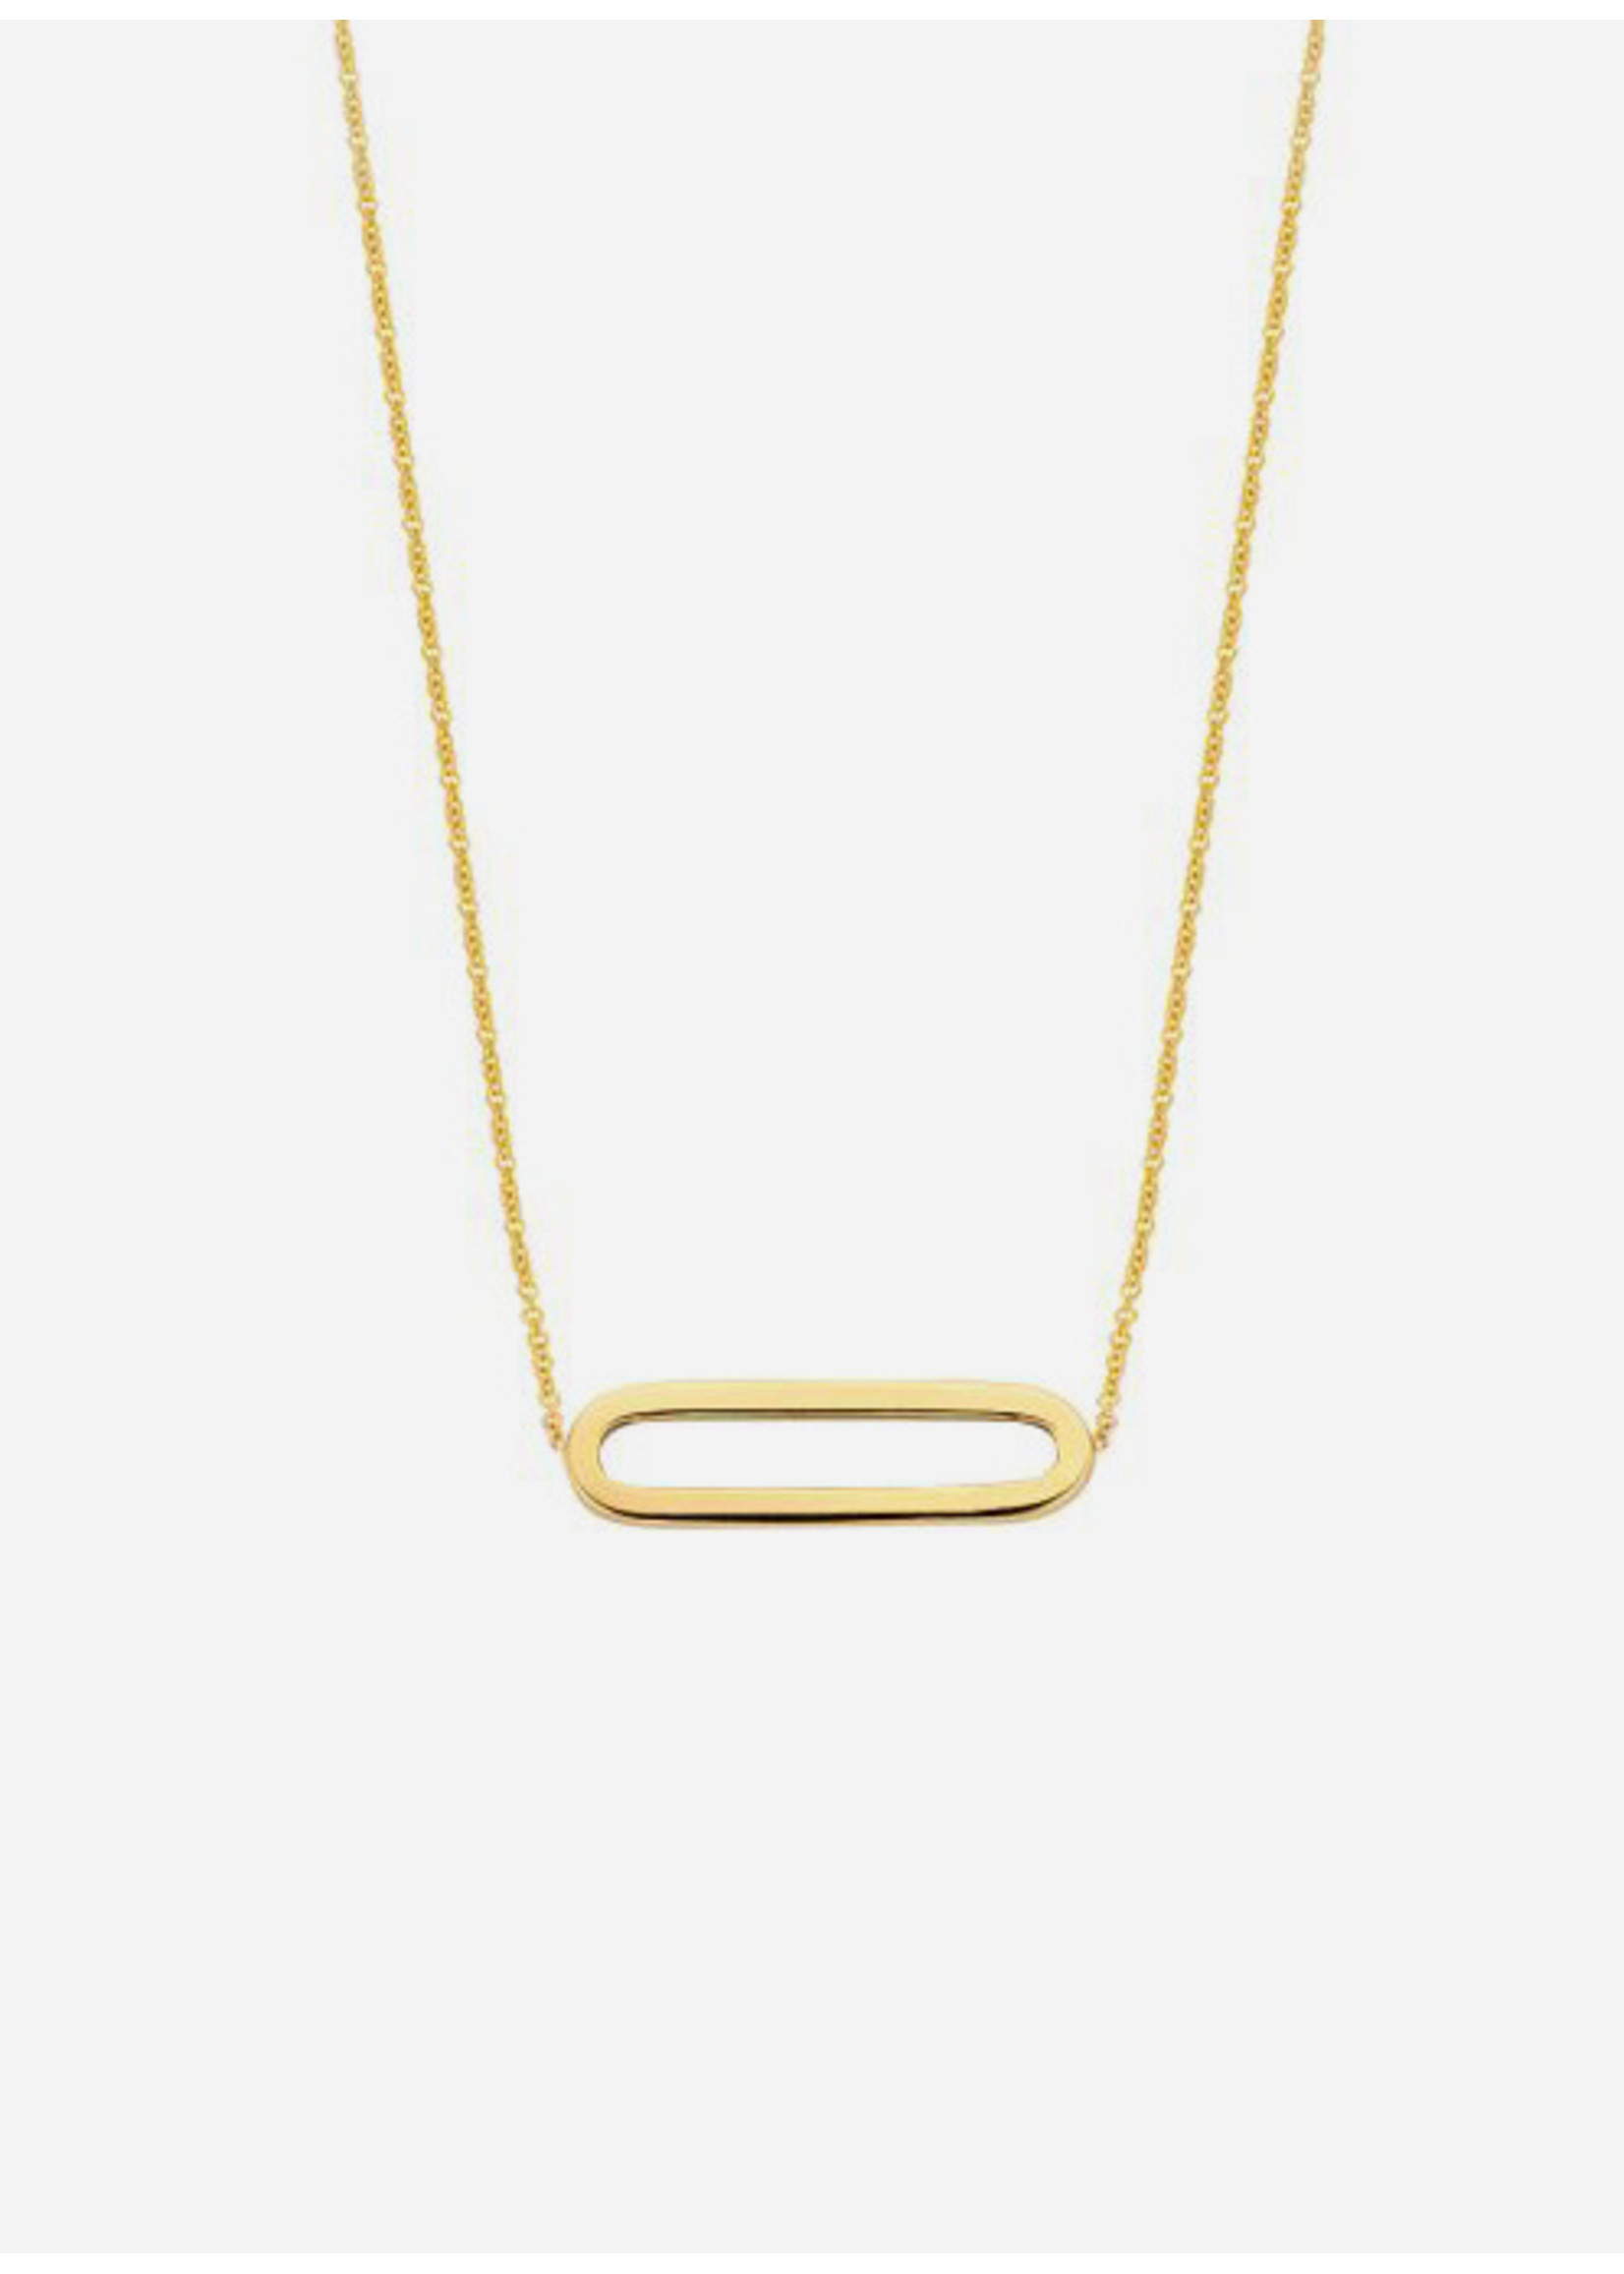 Just Franky Necklace 1 link